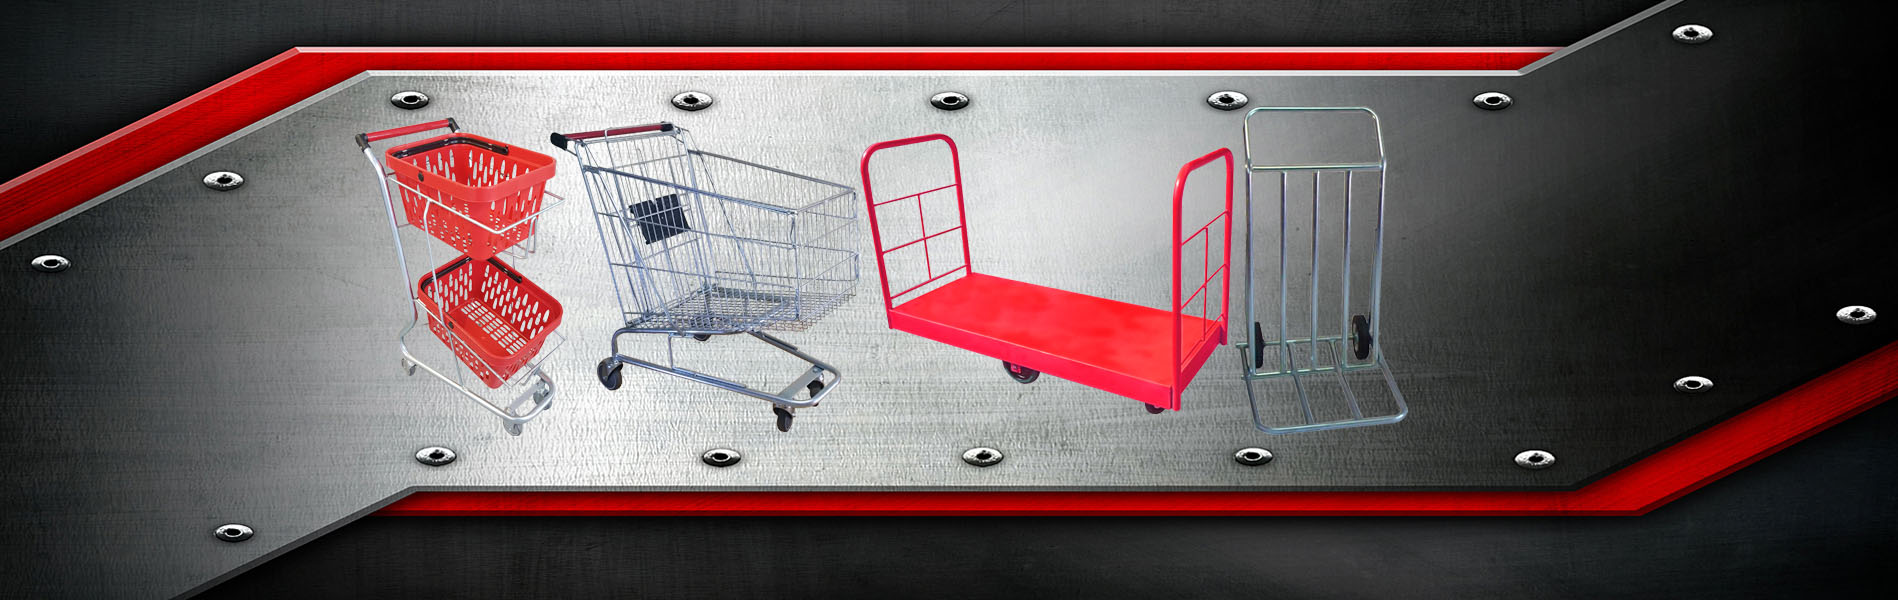 TROLLEYS-SLIDE-2